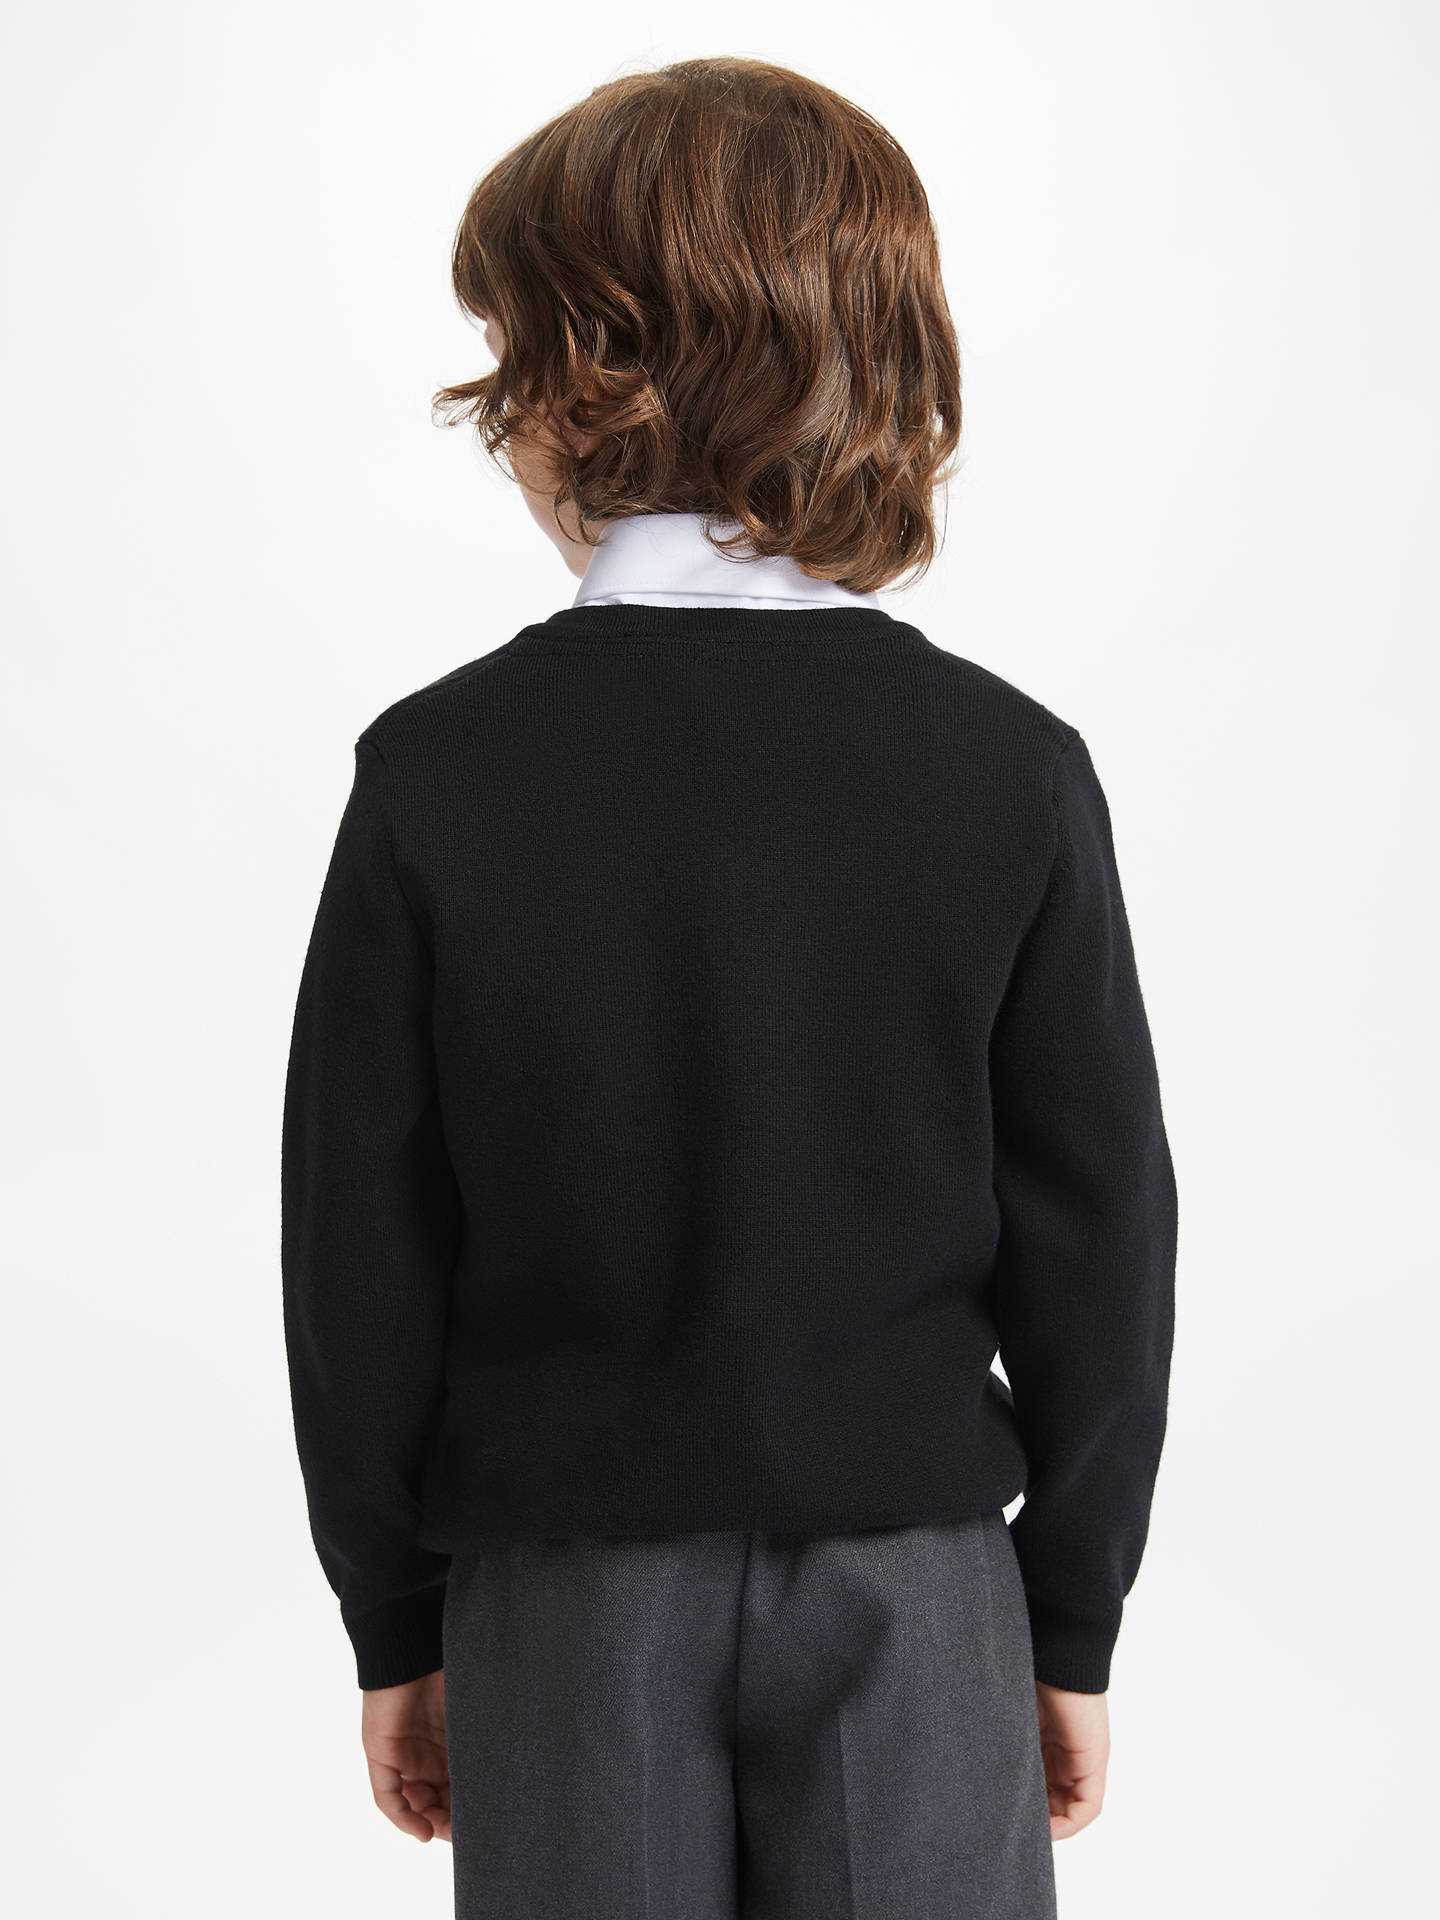 Buy John Lewis & Partners Unisex School V-Neck Jumper, Black, 3-4 years Online at johnlewis.com